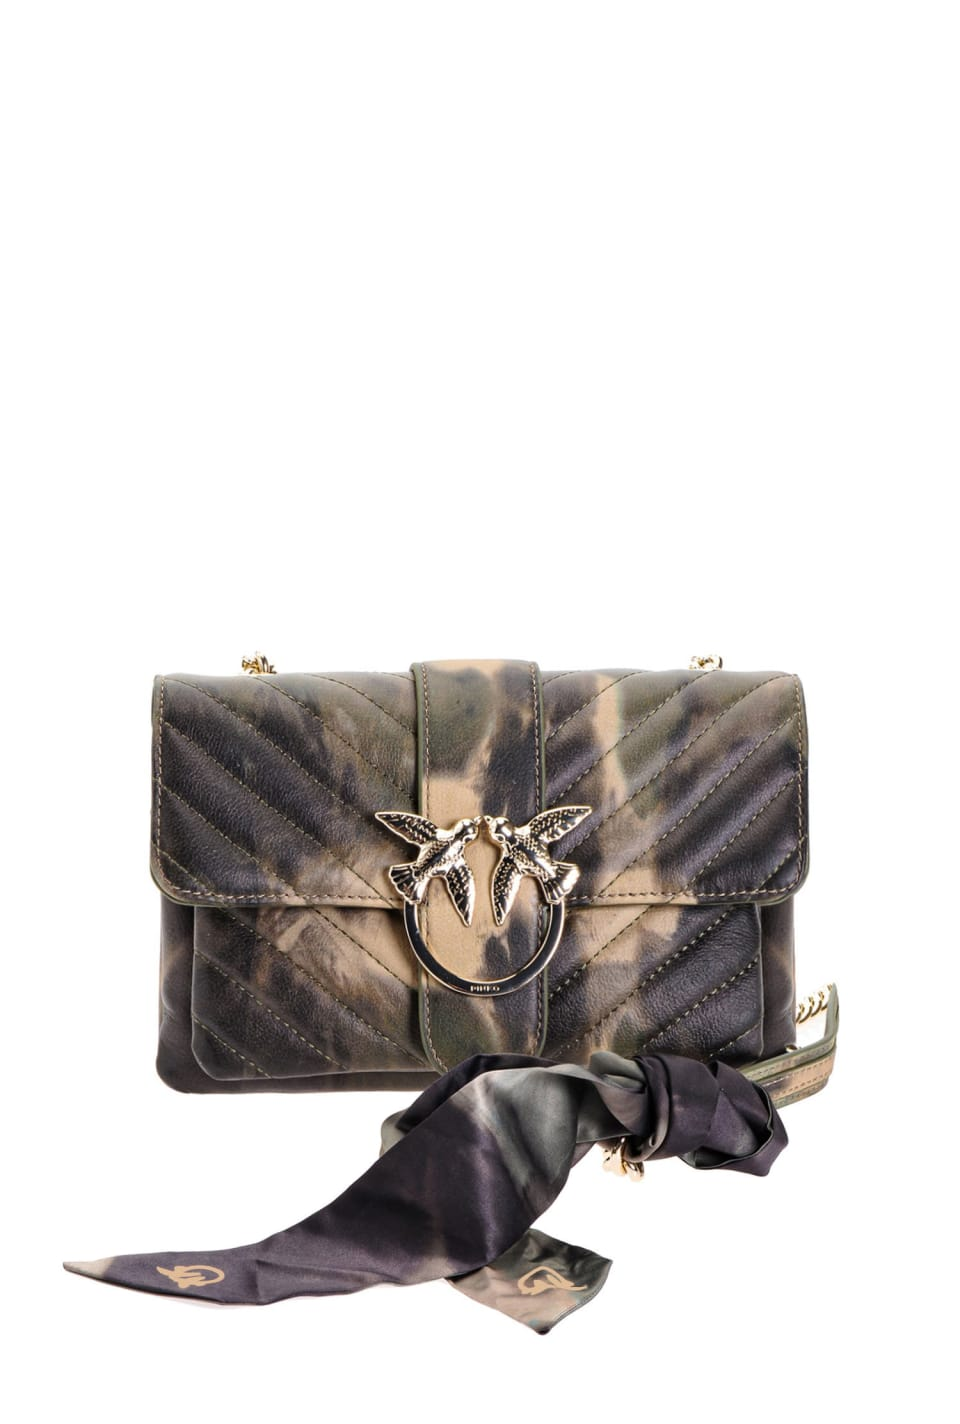 Mini Love Bag Soft Sunset in nappa leather